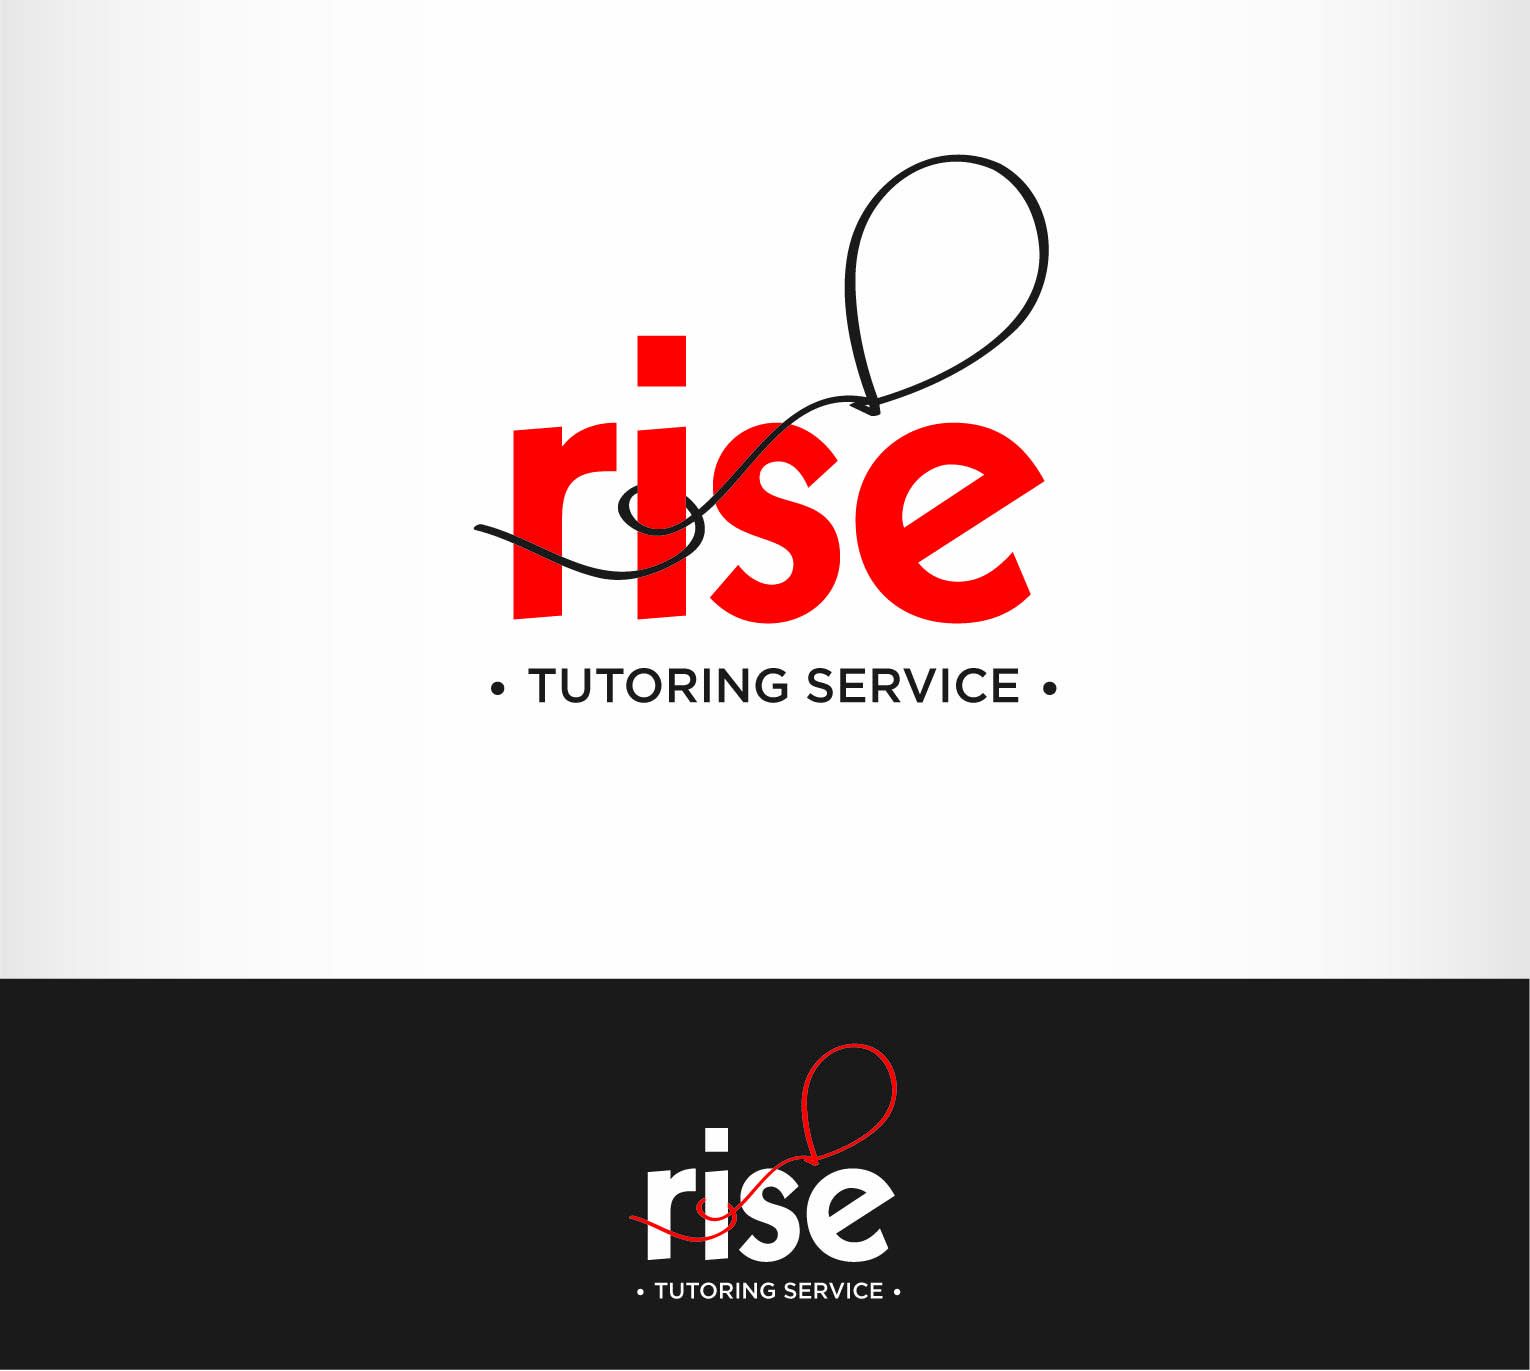 Logo Design by Andrés González - Entry No. 102 in the Logo Design Contest Imaginative Logo Design for Rise Tutoring Service.